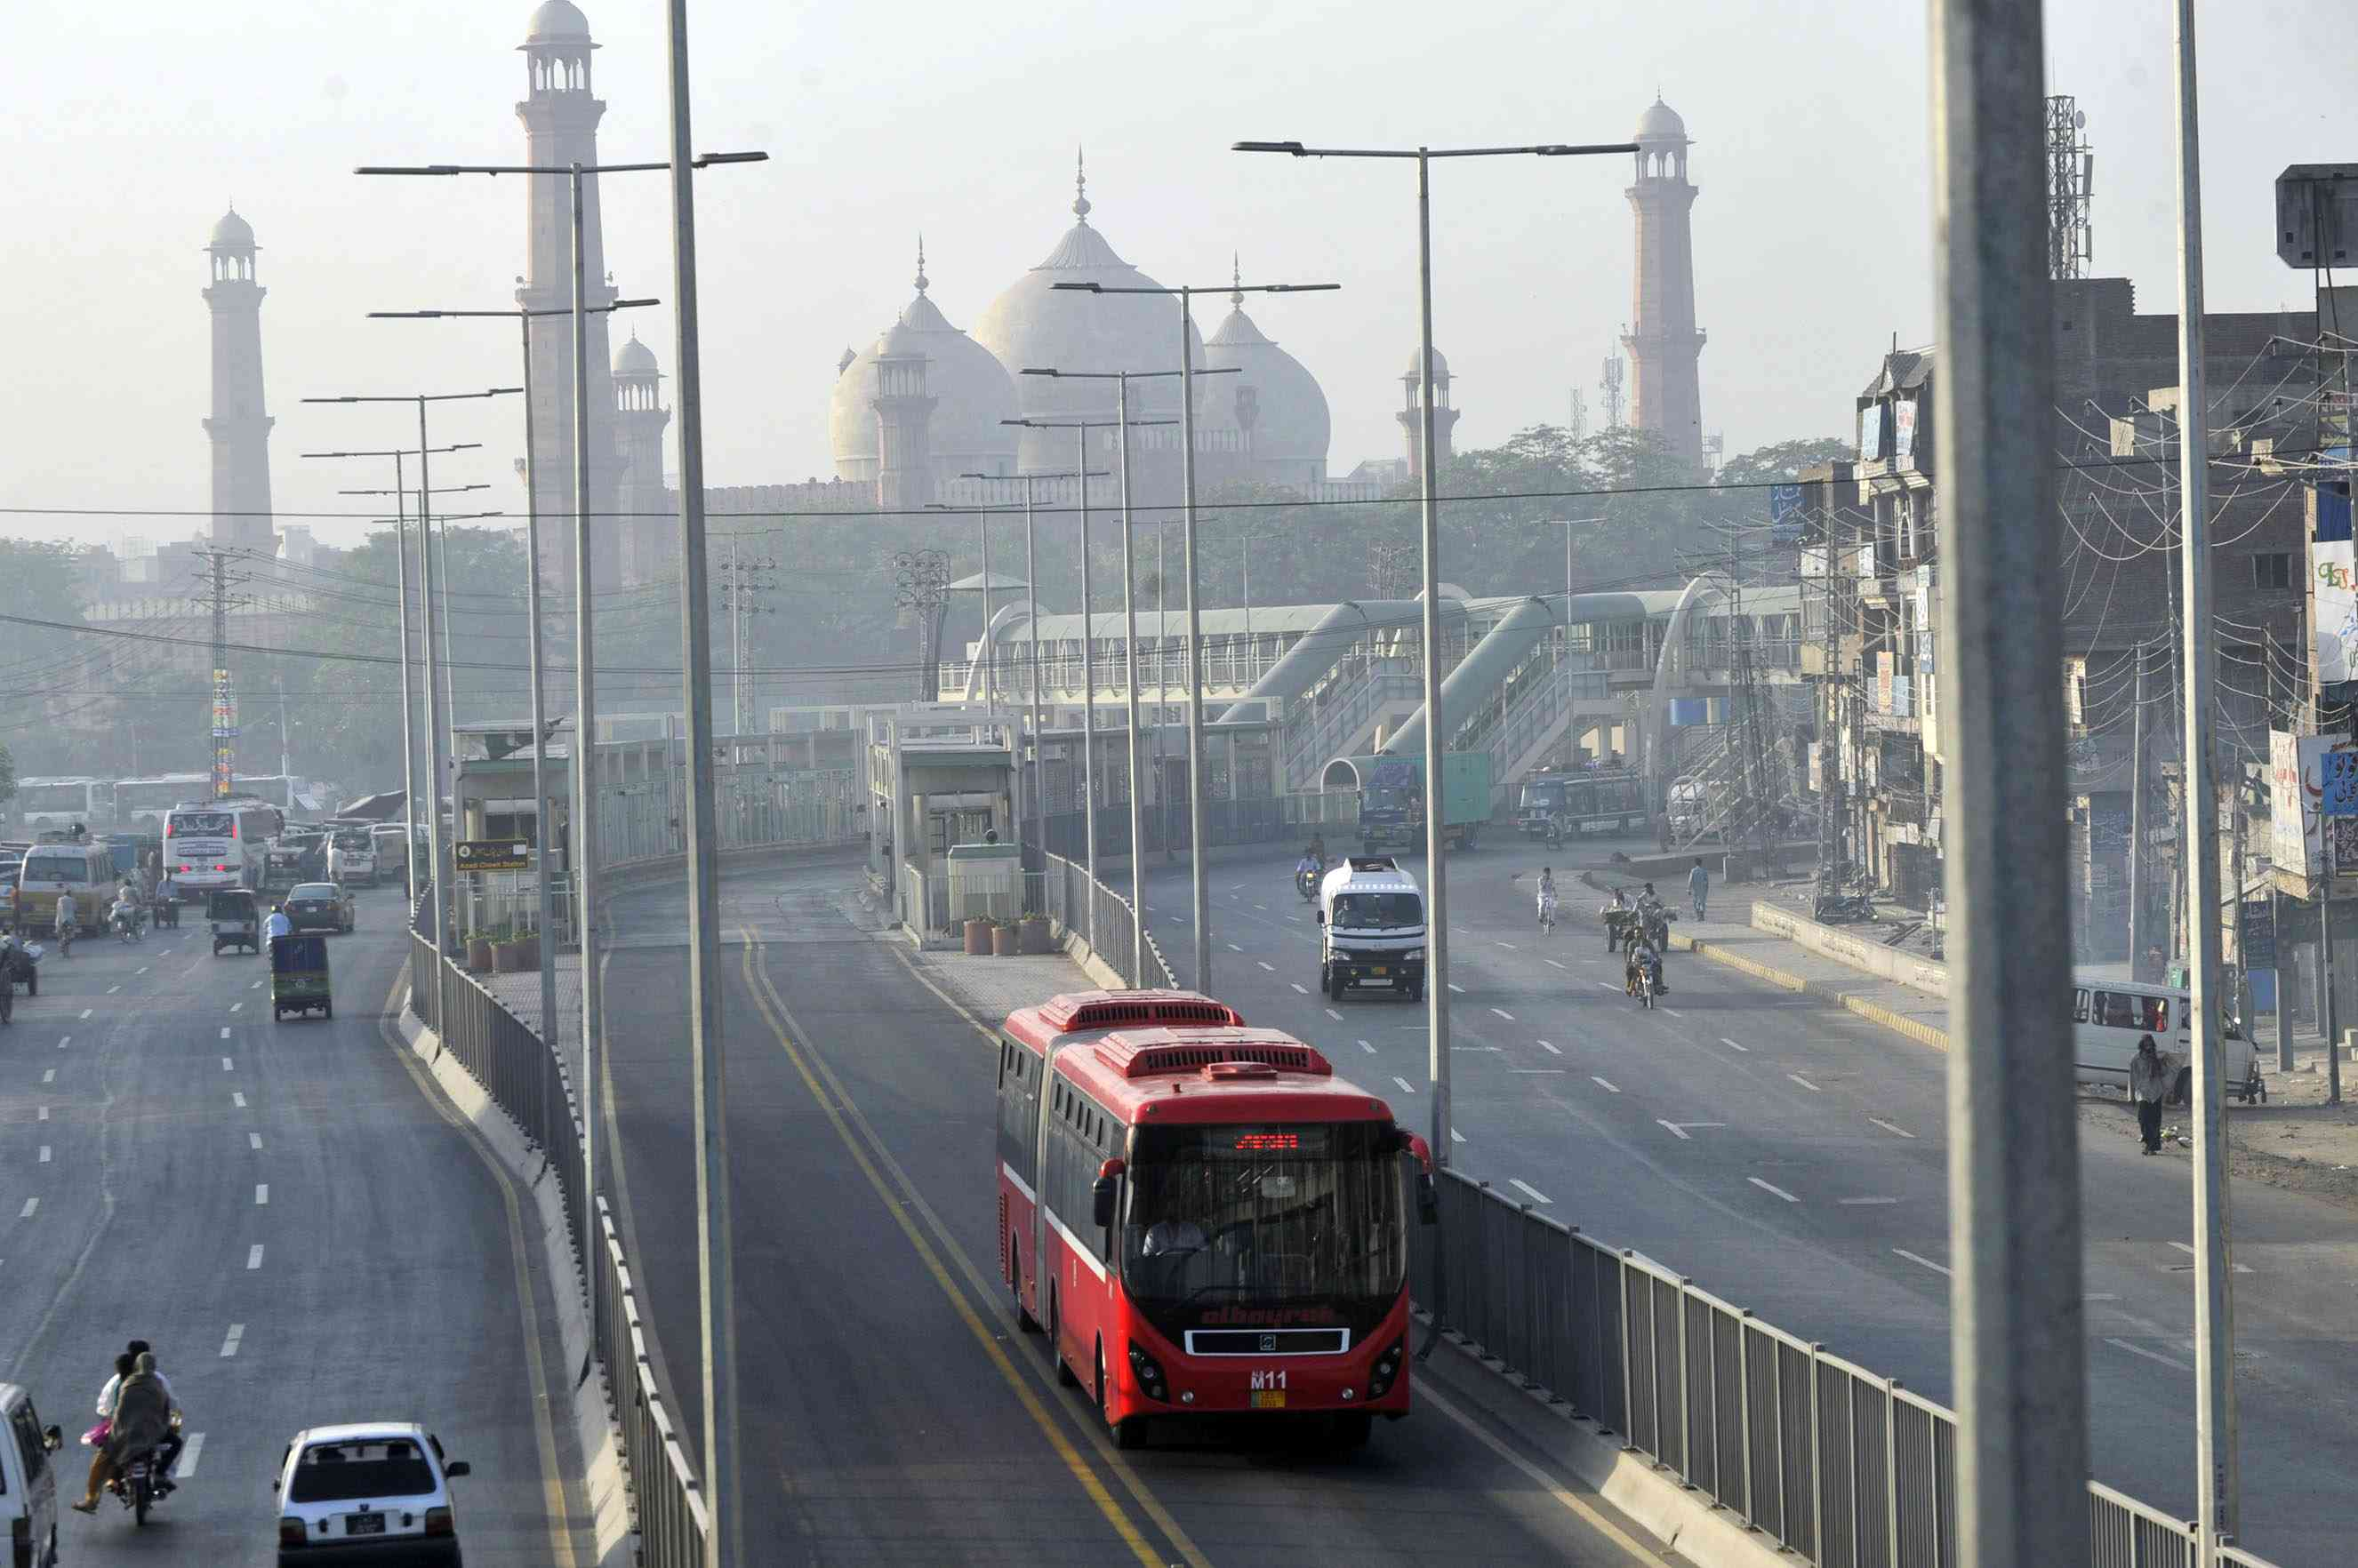 A Pakistani metro bus travels along a highway in Lahore. (Photo credit: Arif Ali/AFP)